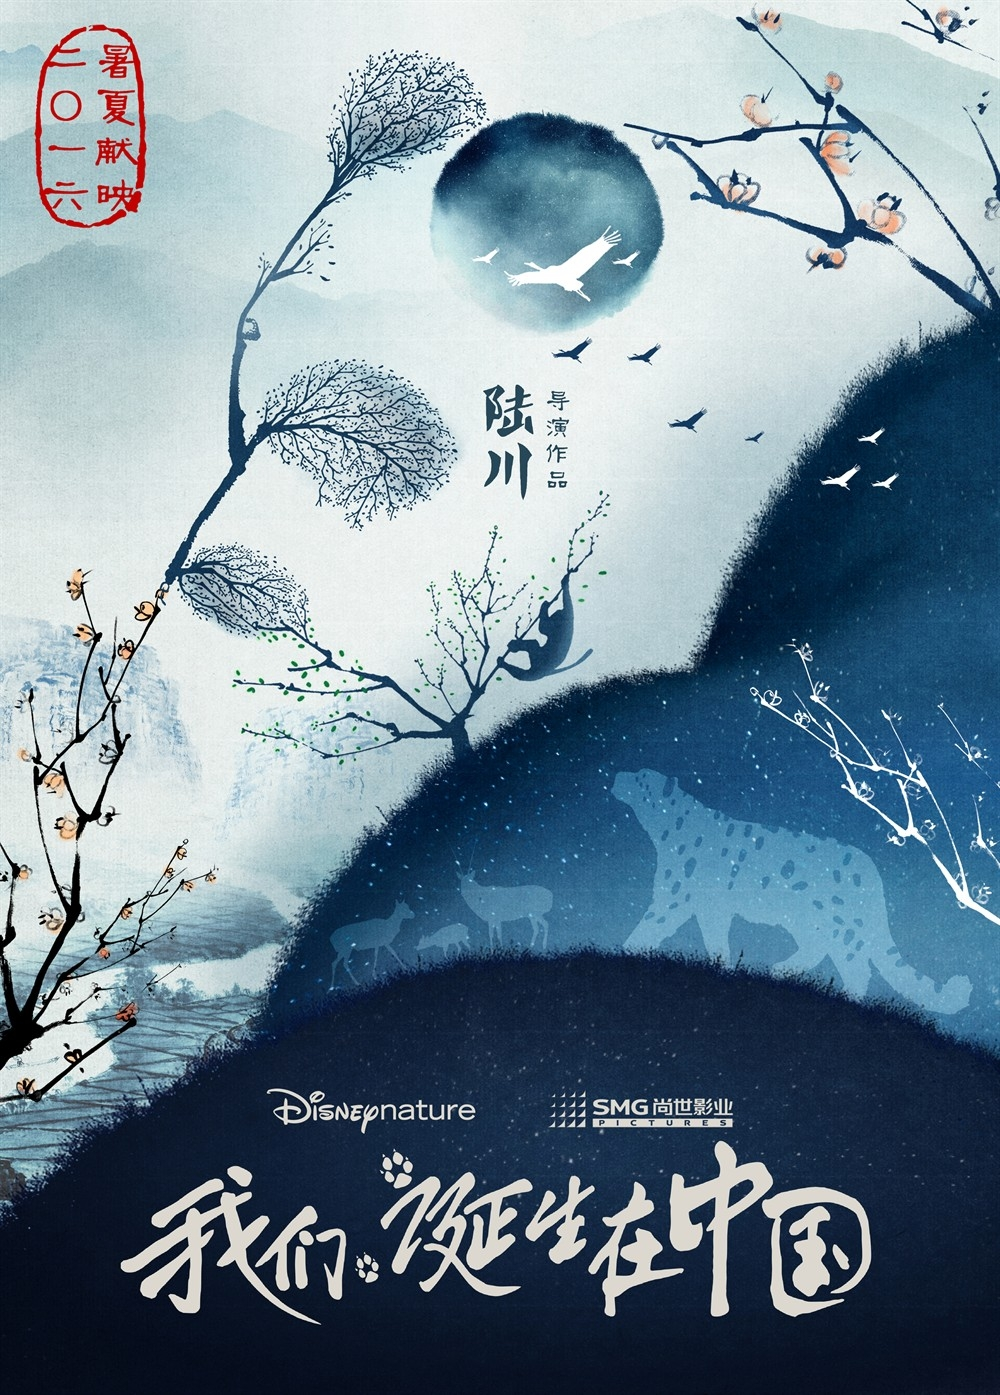 affiche poster disneynature born in china